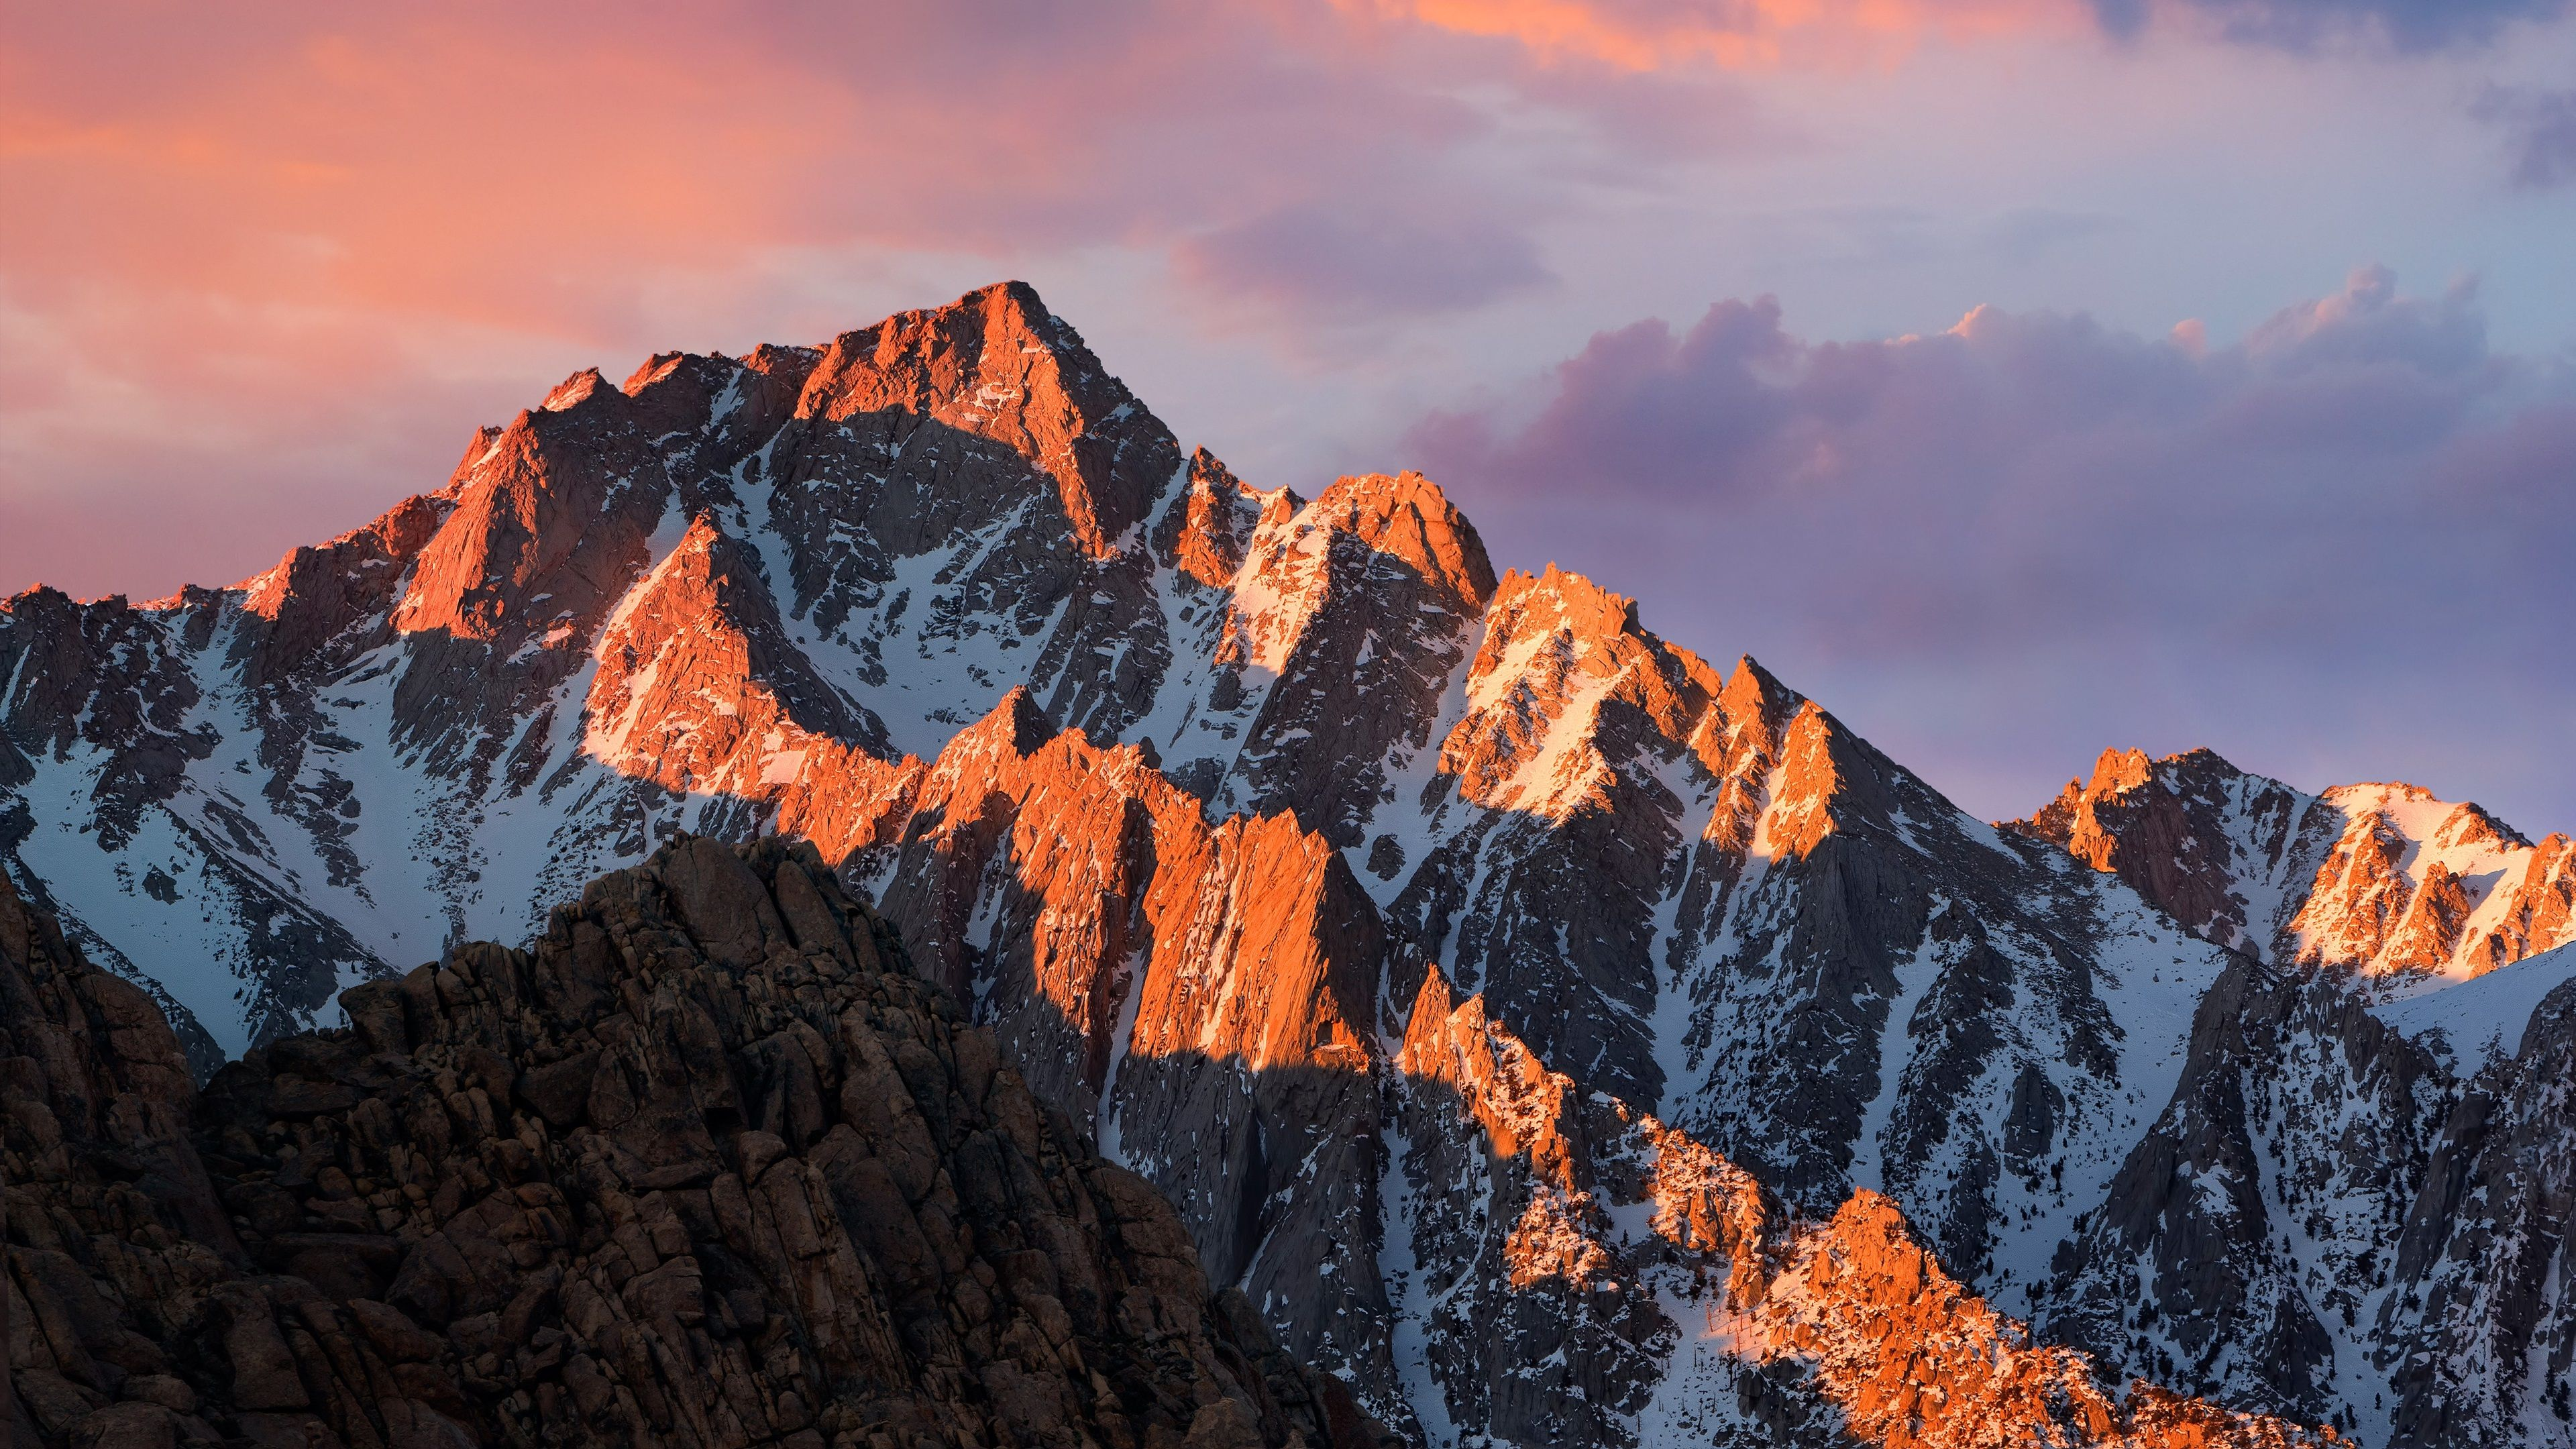 3840x2160 Macos Sierra 4k Desktop Wallpaper Hd Widescreen Macos Sierra Wallpaper Mac Os Wallpaper Os Wallpaper